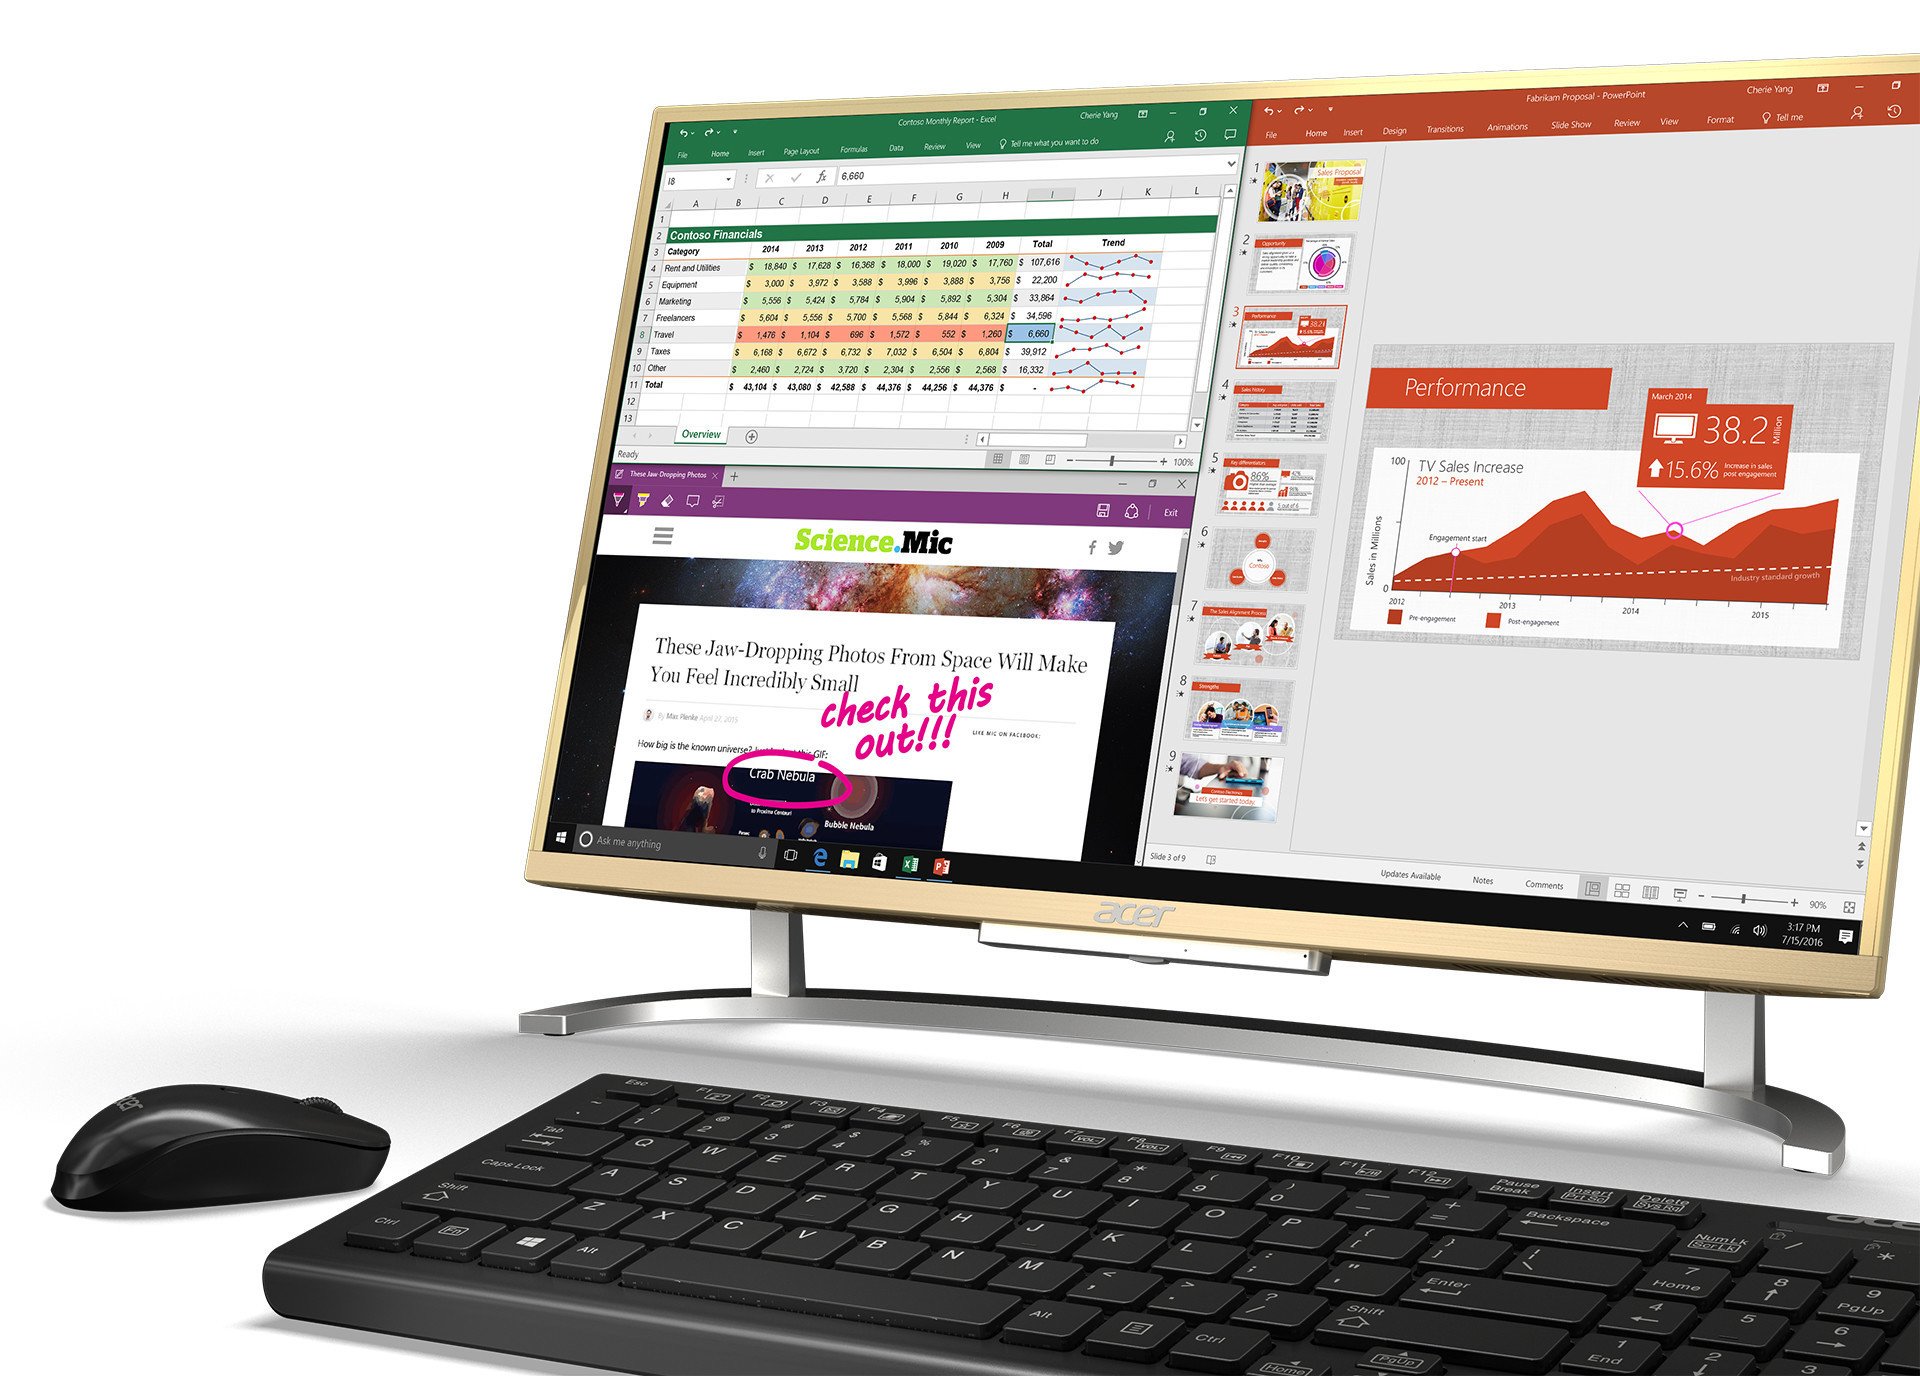 Don T Be Misled By This Acer Image The Aspire C Has No Touchscreen Or Stylus Support